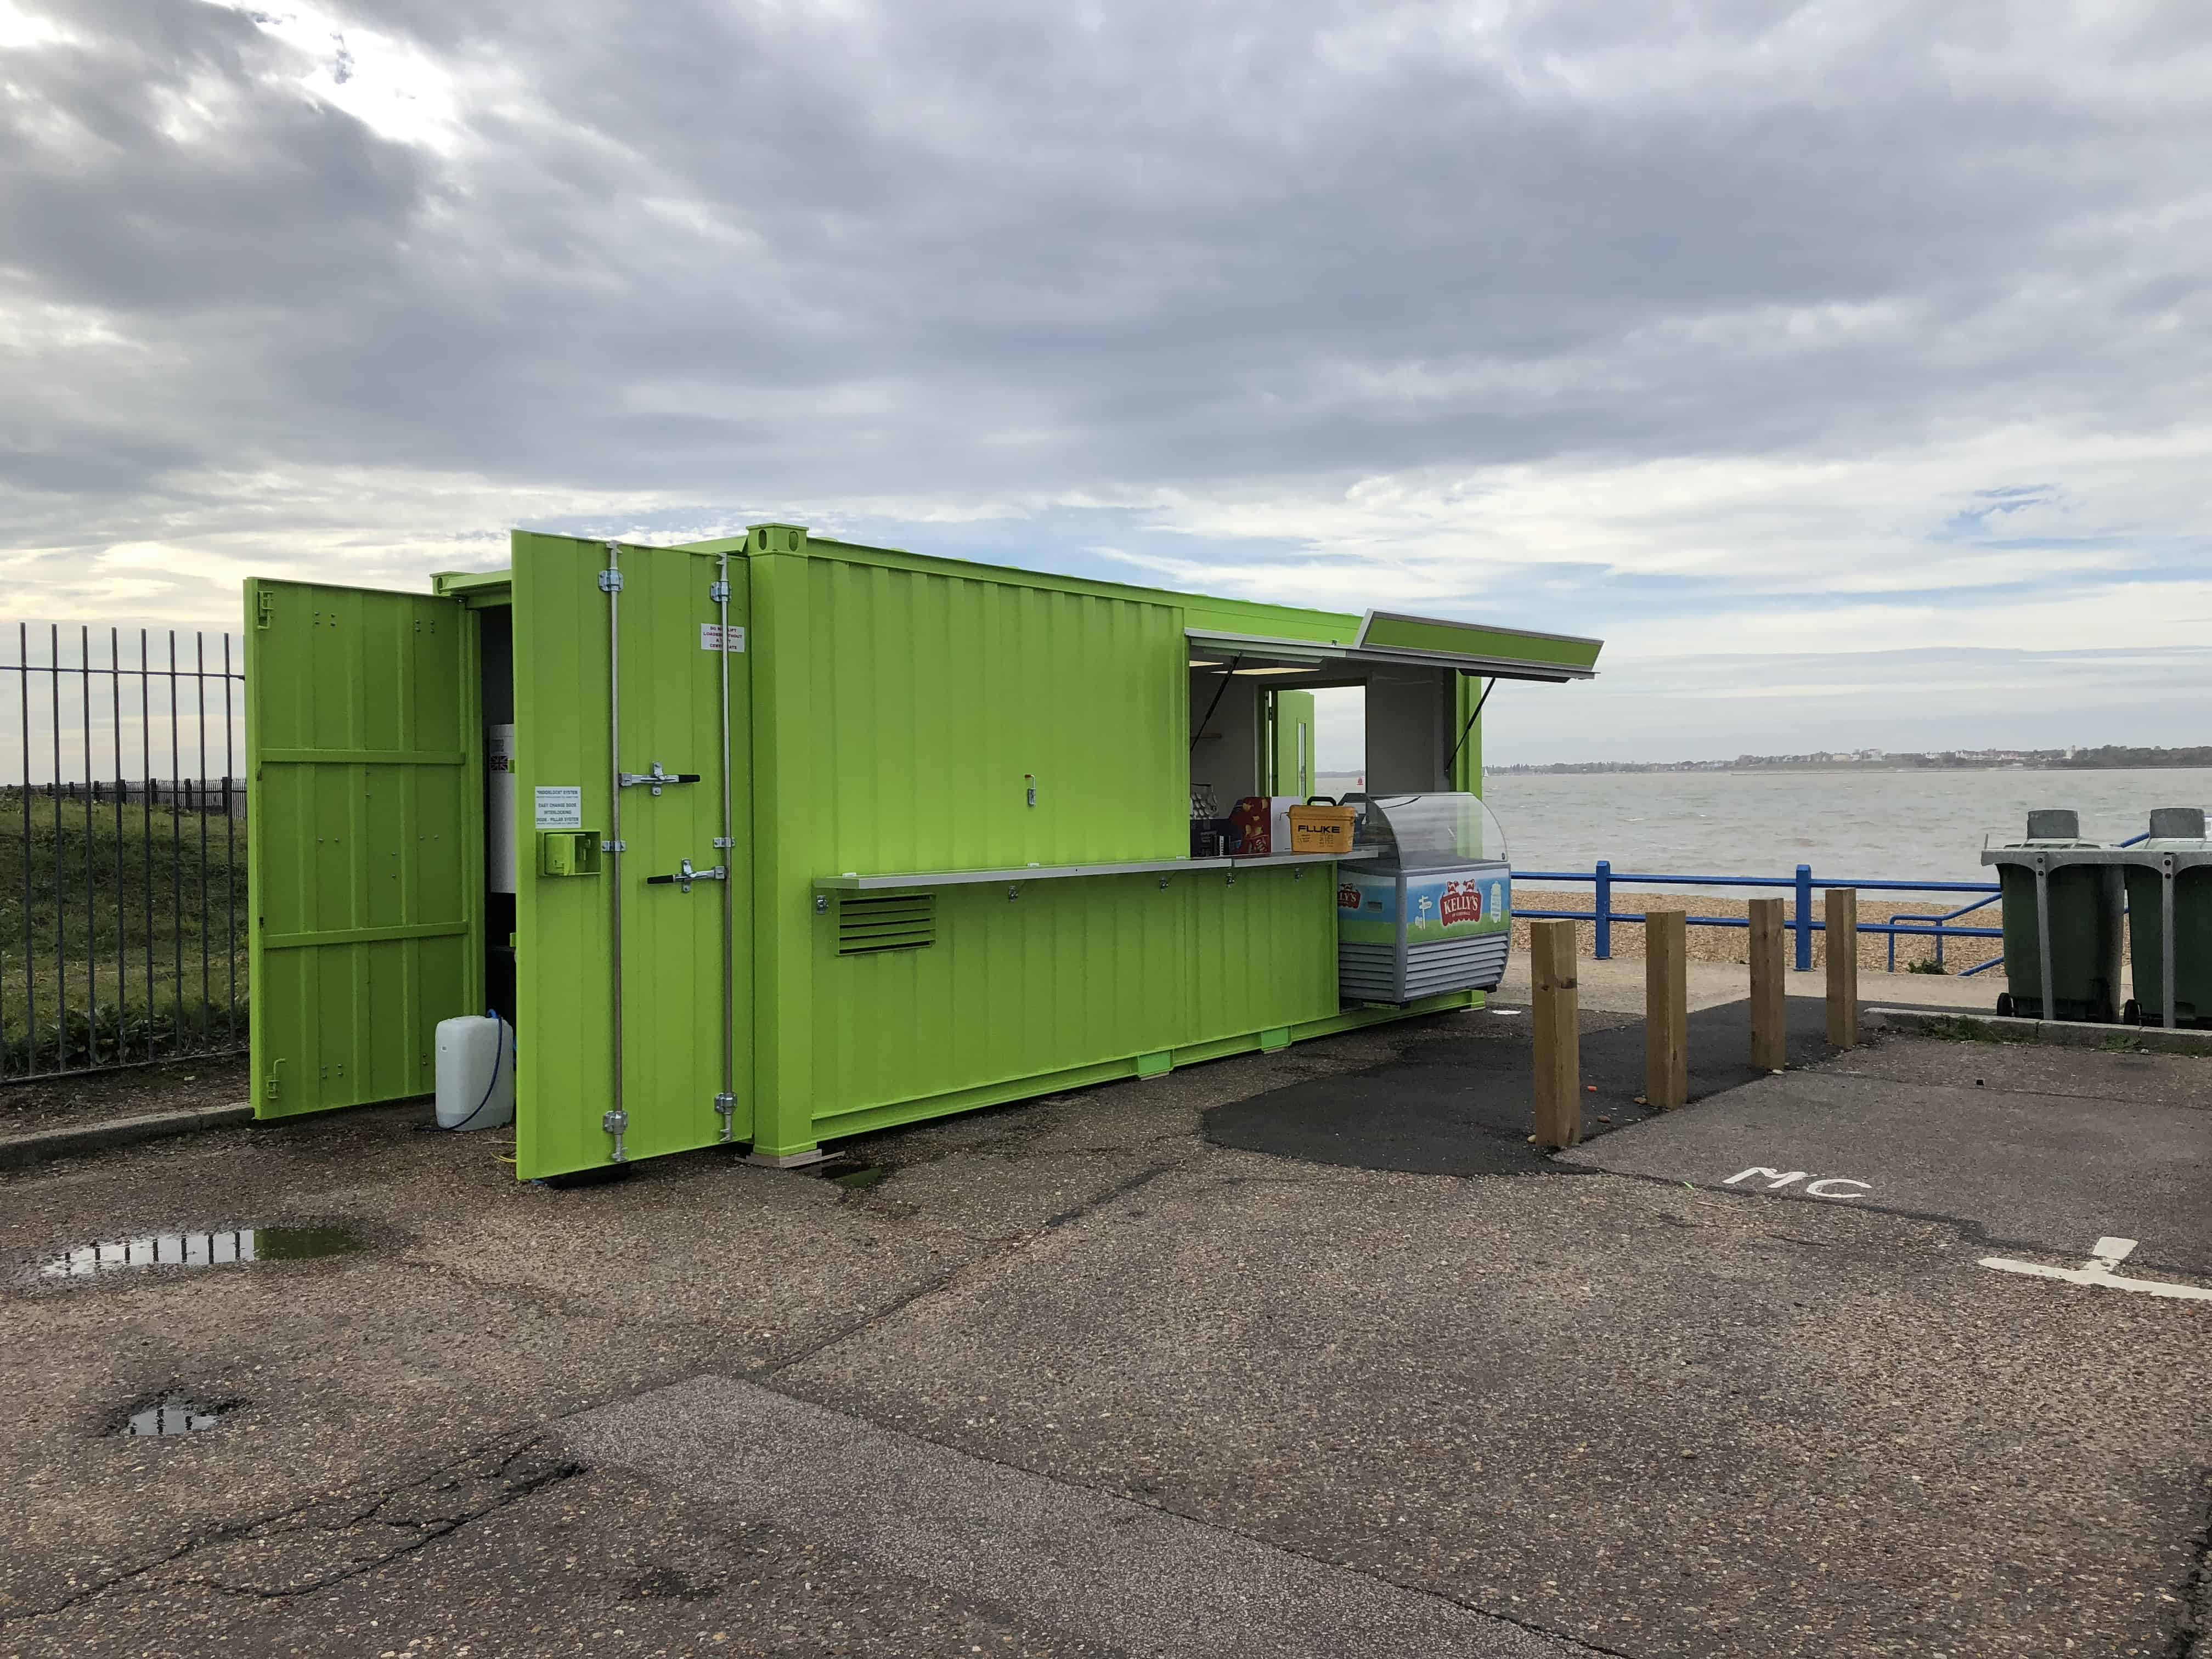 Container style kiosk used for food retail AJC Retail 2